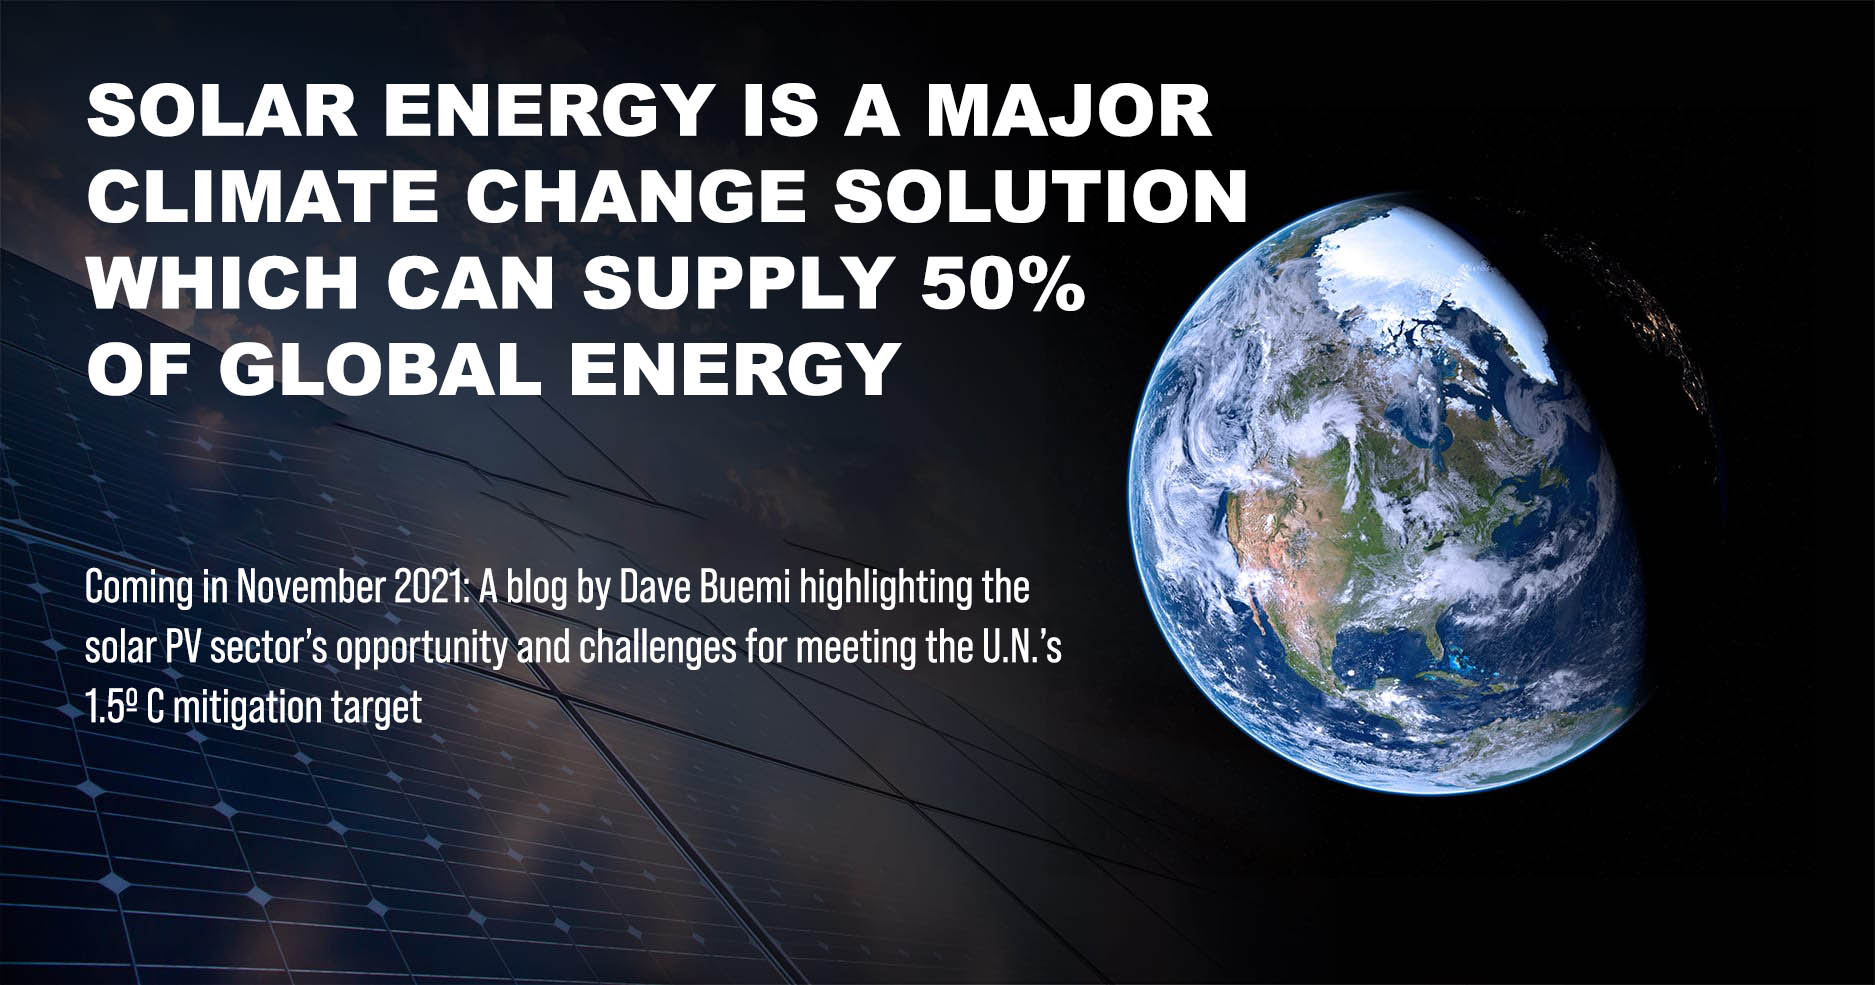 solar energy statement with image of earth